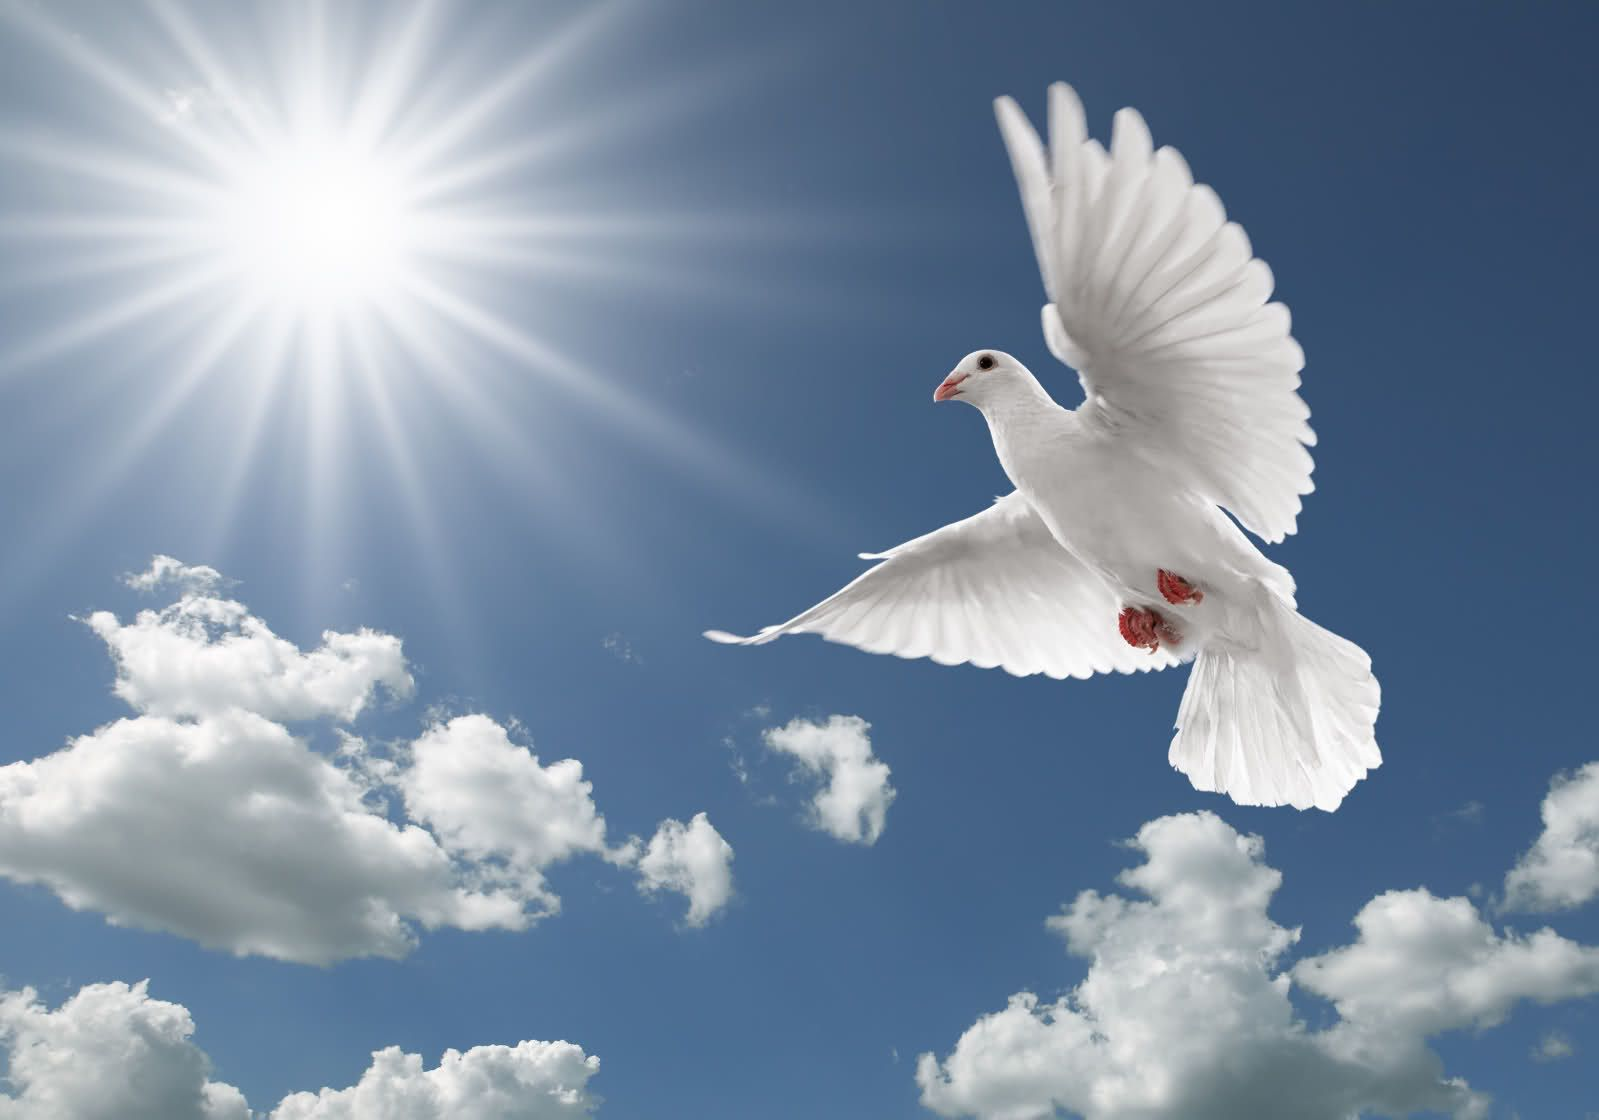 Flying Birds Wallpapers   HD wallpapers n birds Dove flying 1599x1120